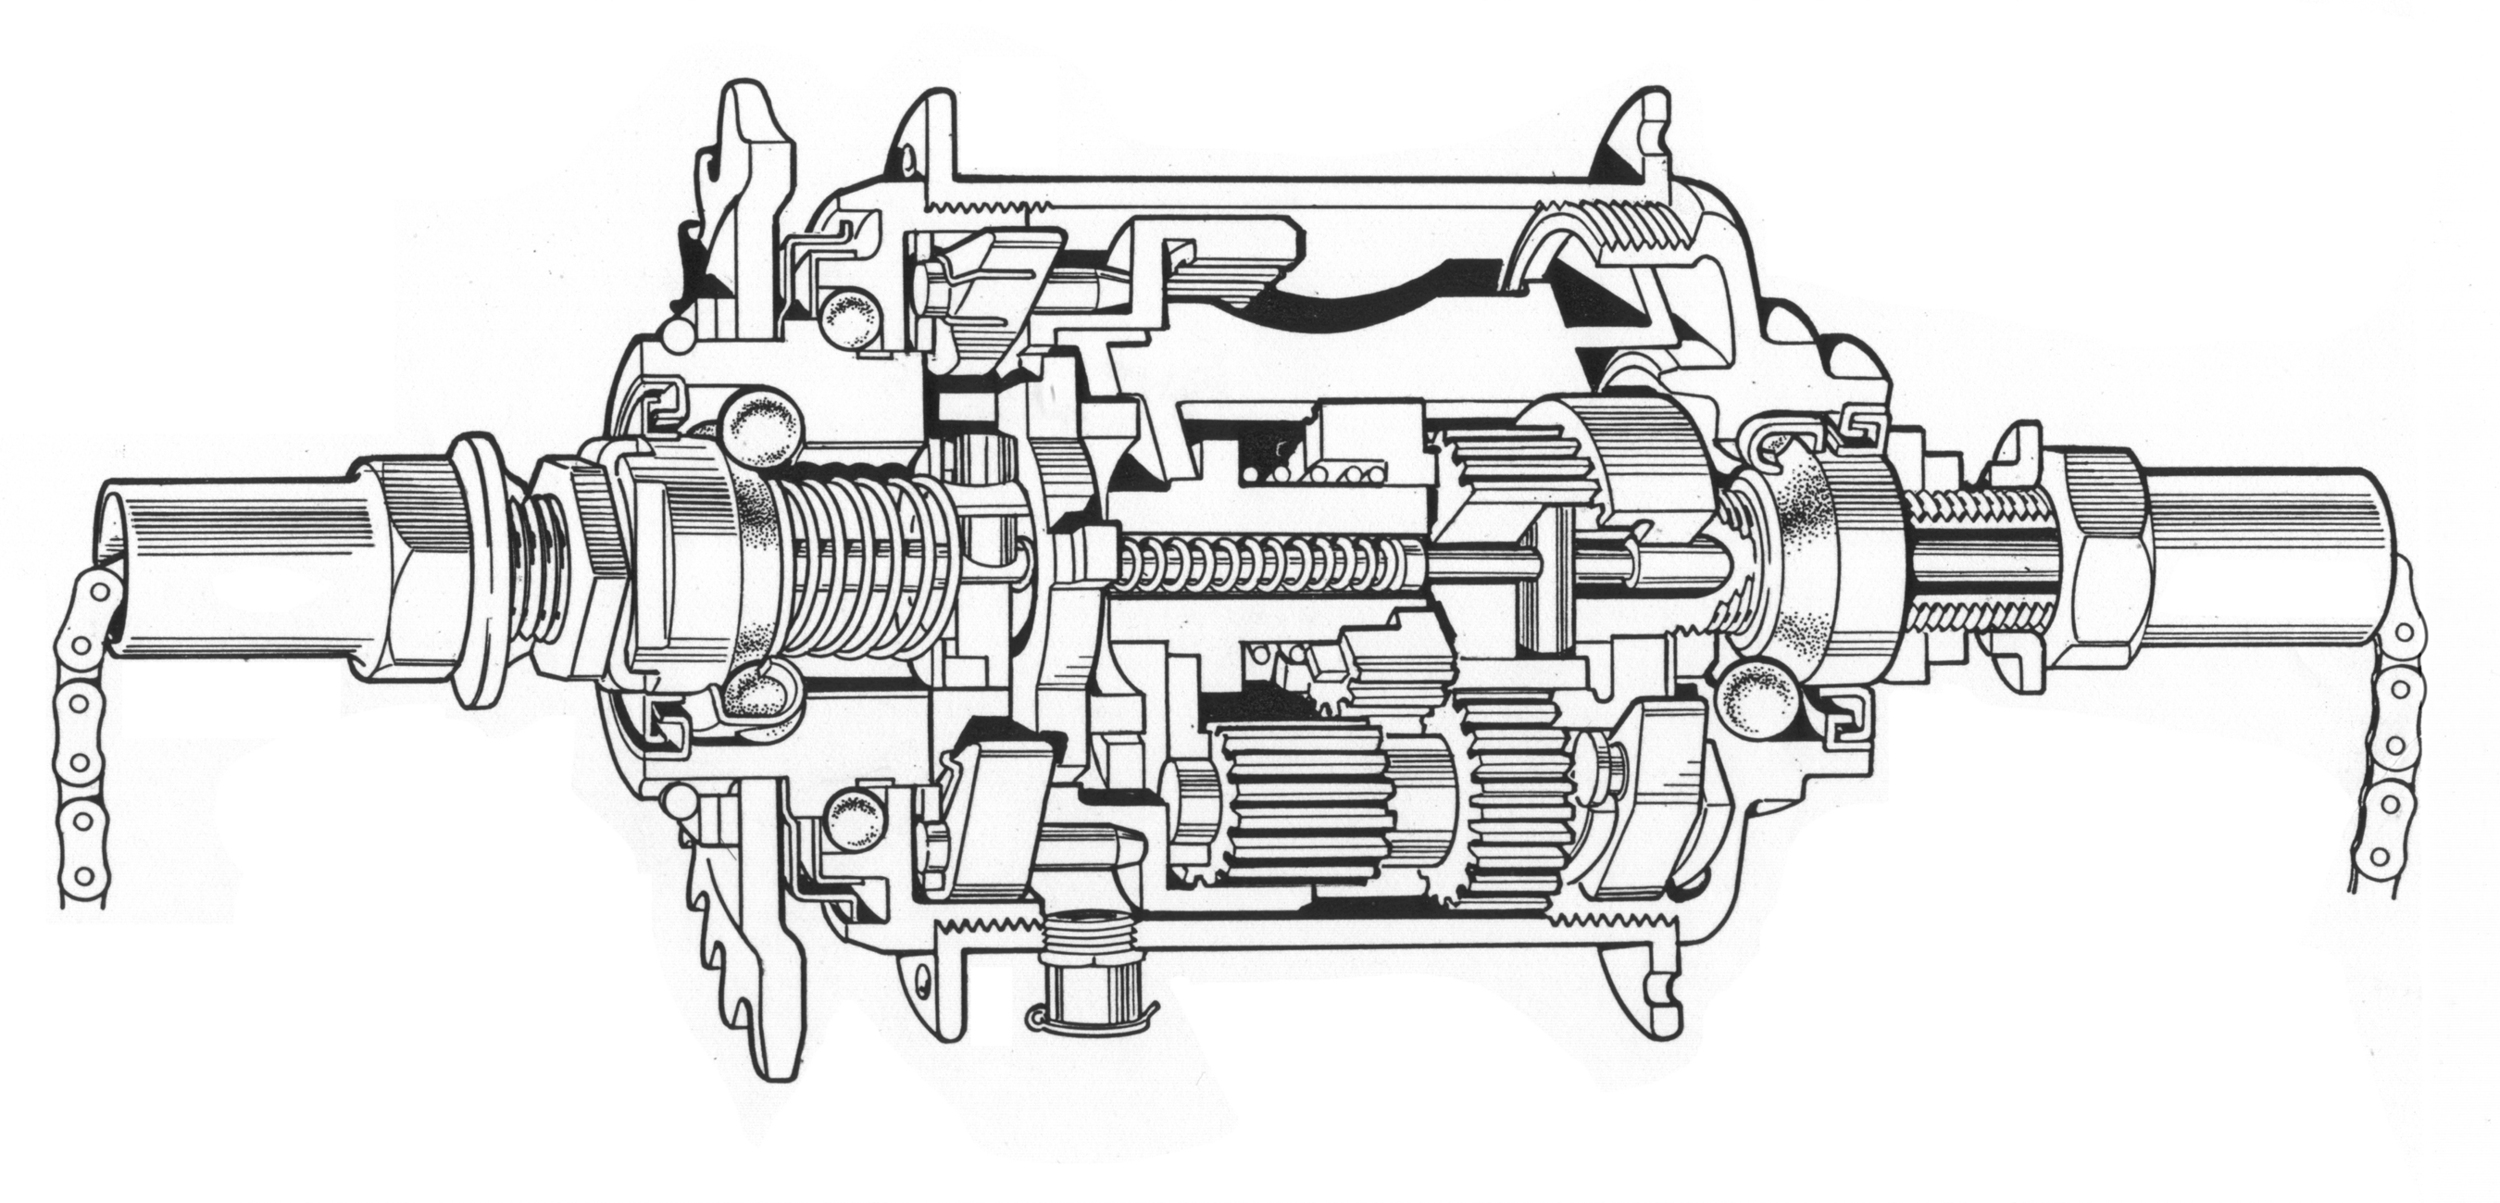 Bicycling Magazine - Sturmey Archer cutaway